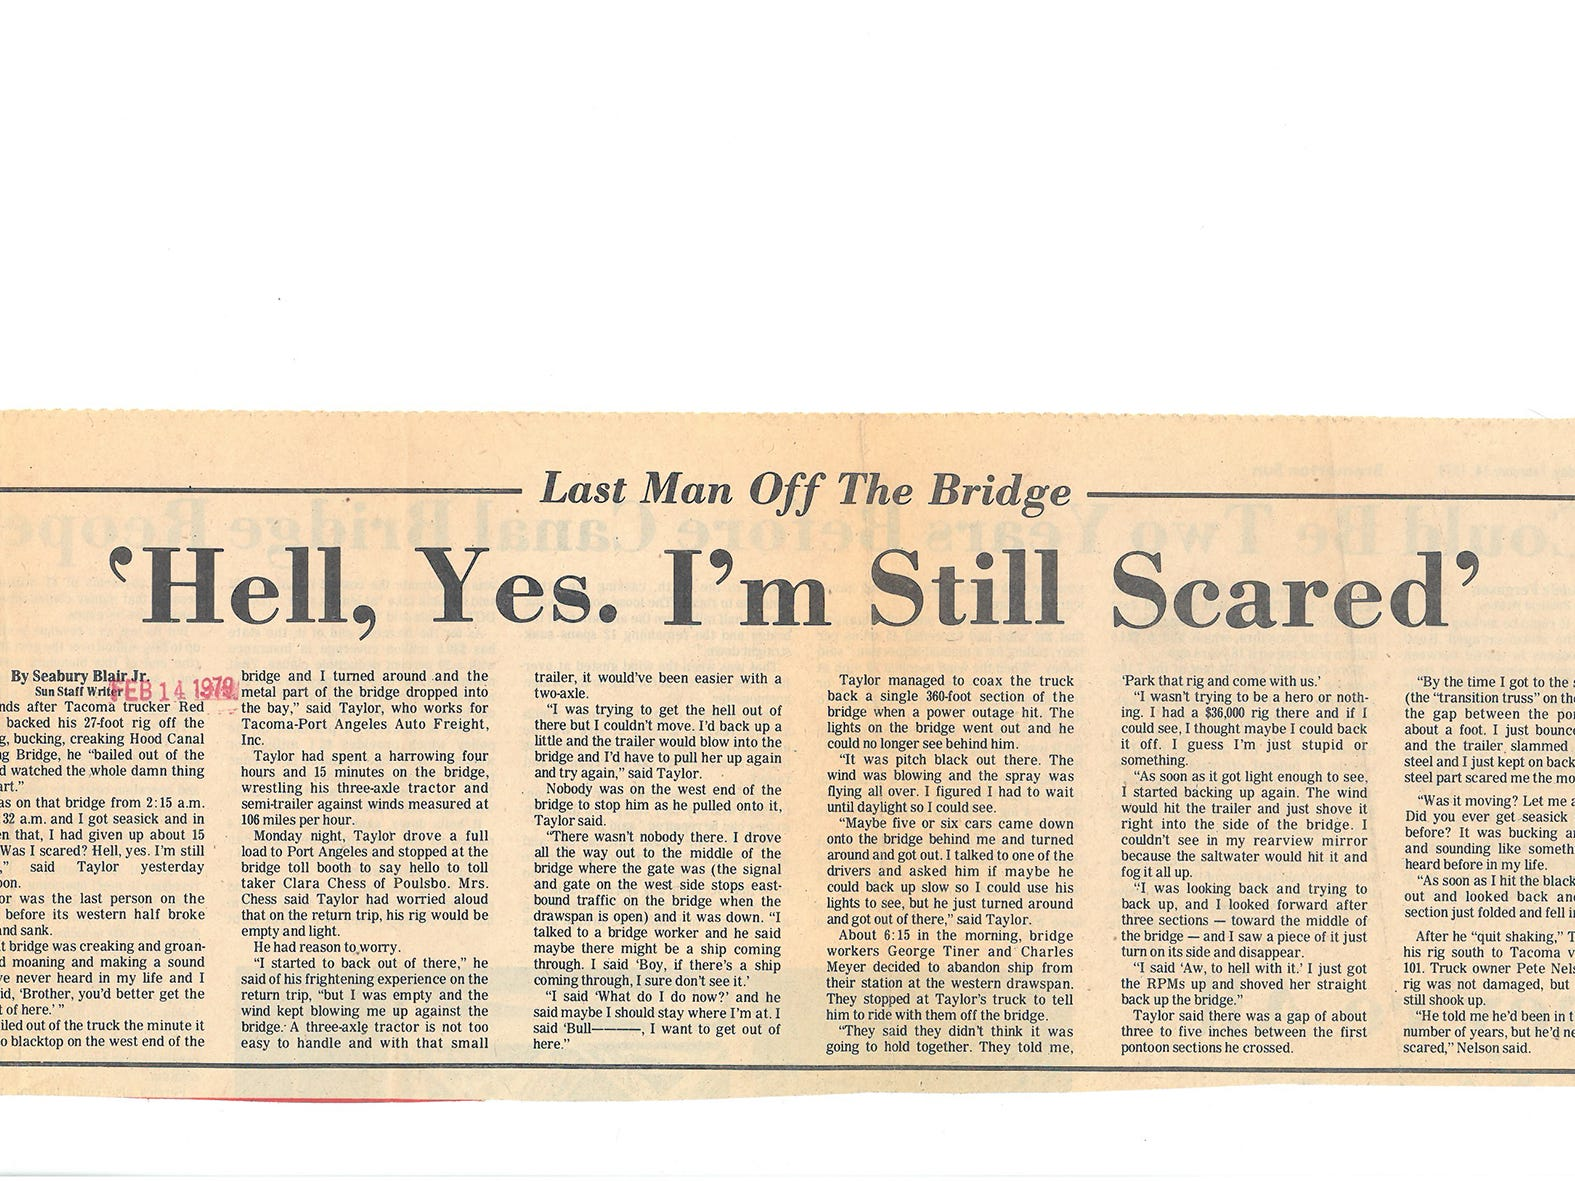 Feb. 14, 1979 article headlined 'Hell, Yes. I'm Still Scared' details the story of trucker Red Taylor and his experience of being the last one to get off the bridge before it sank.